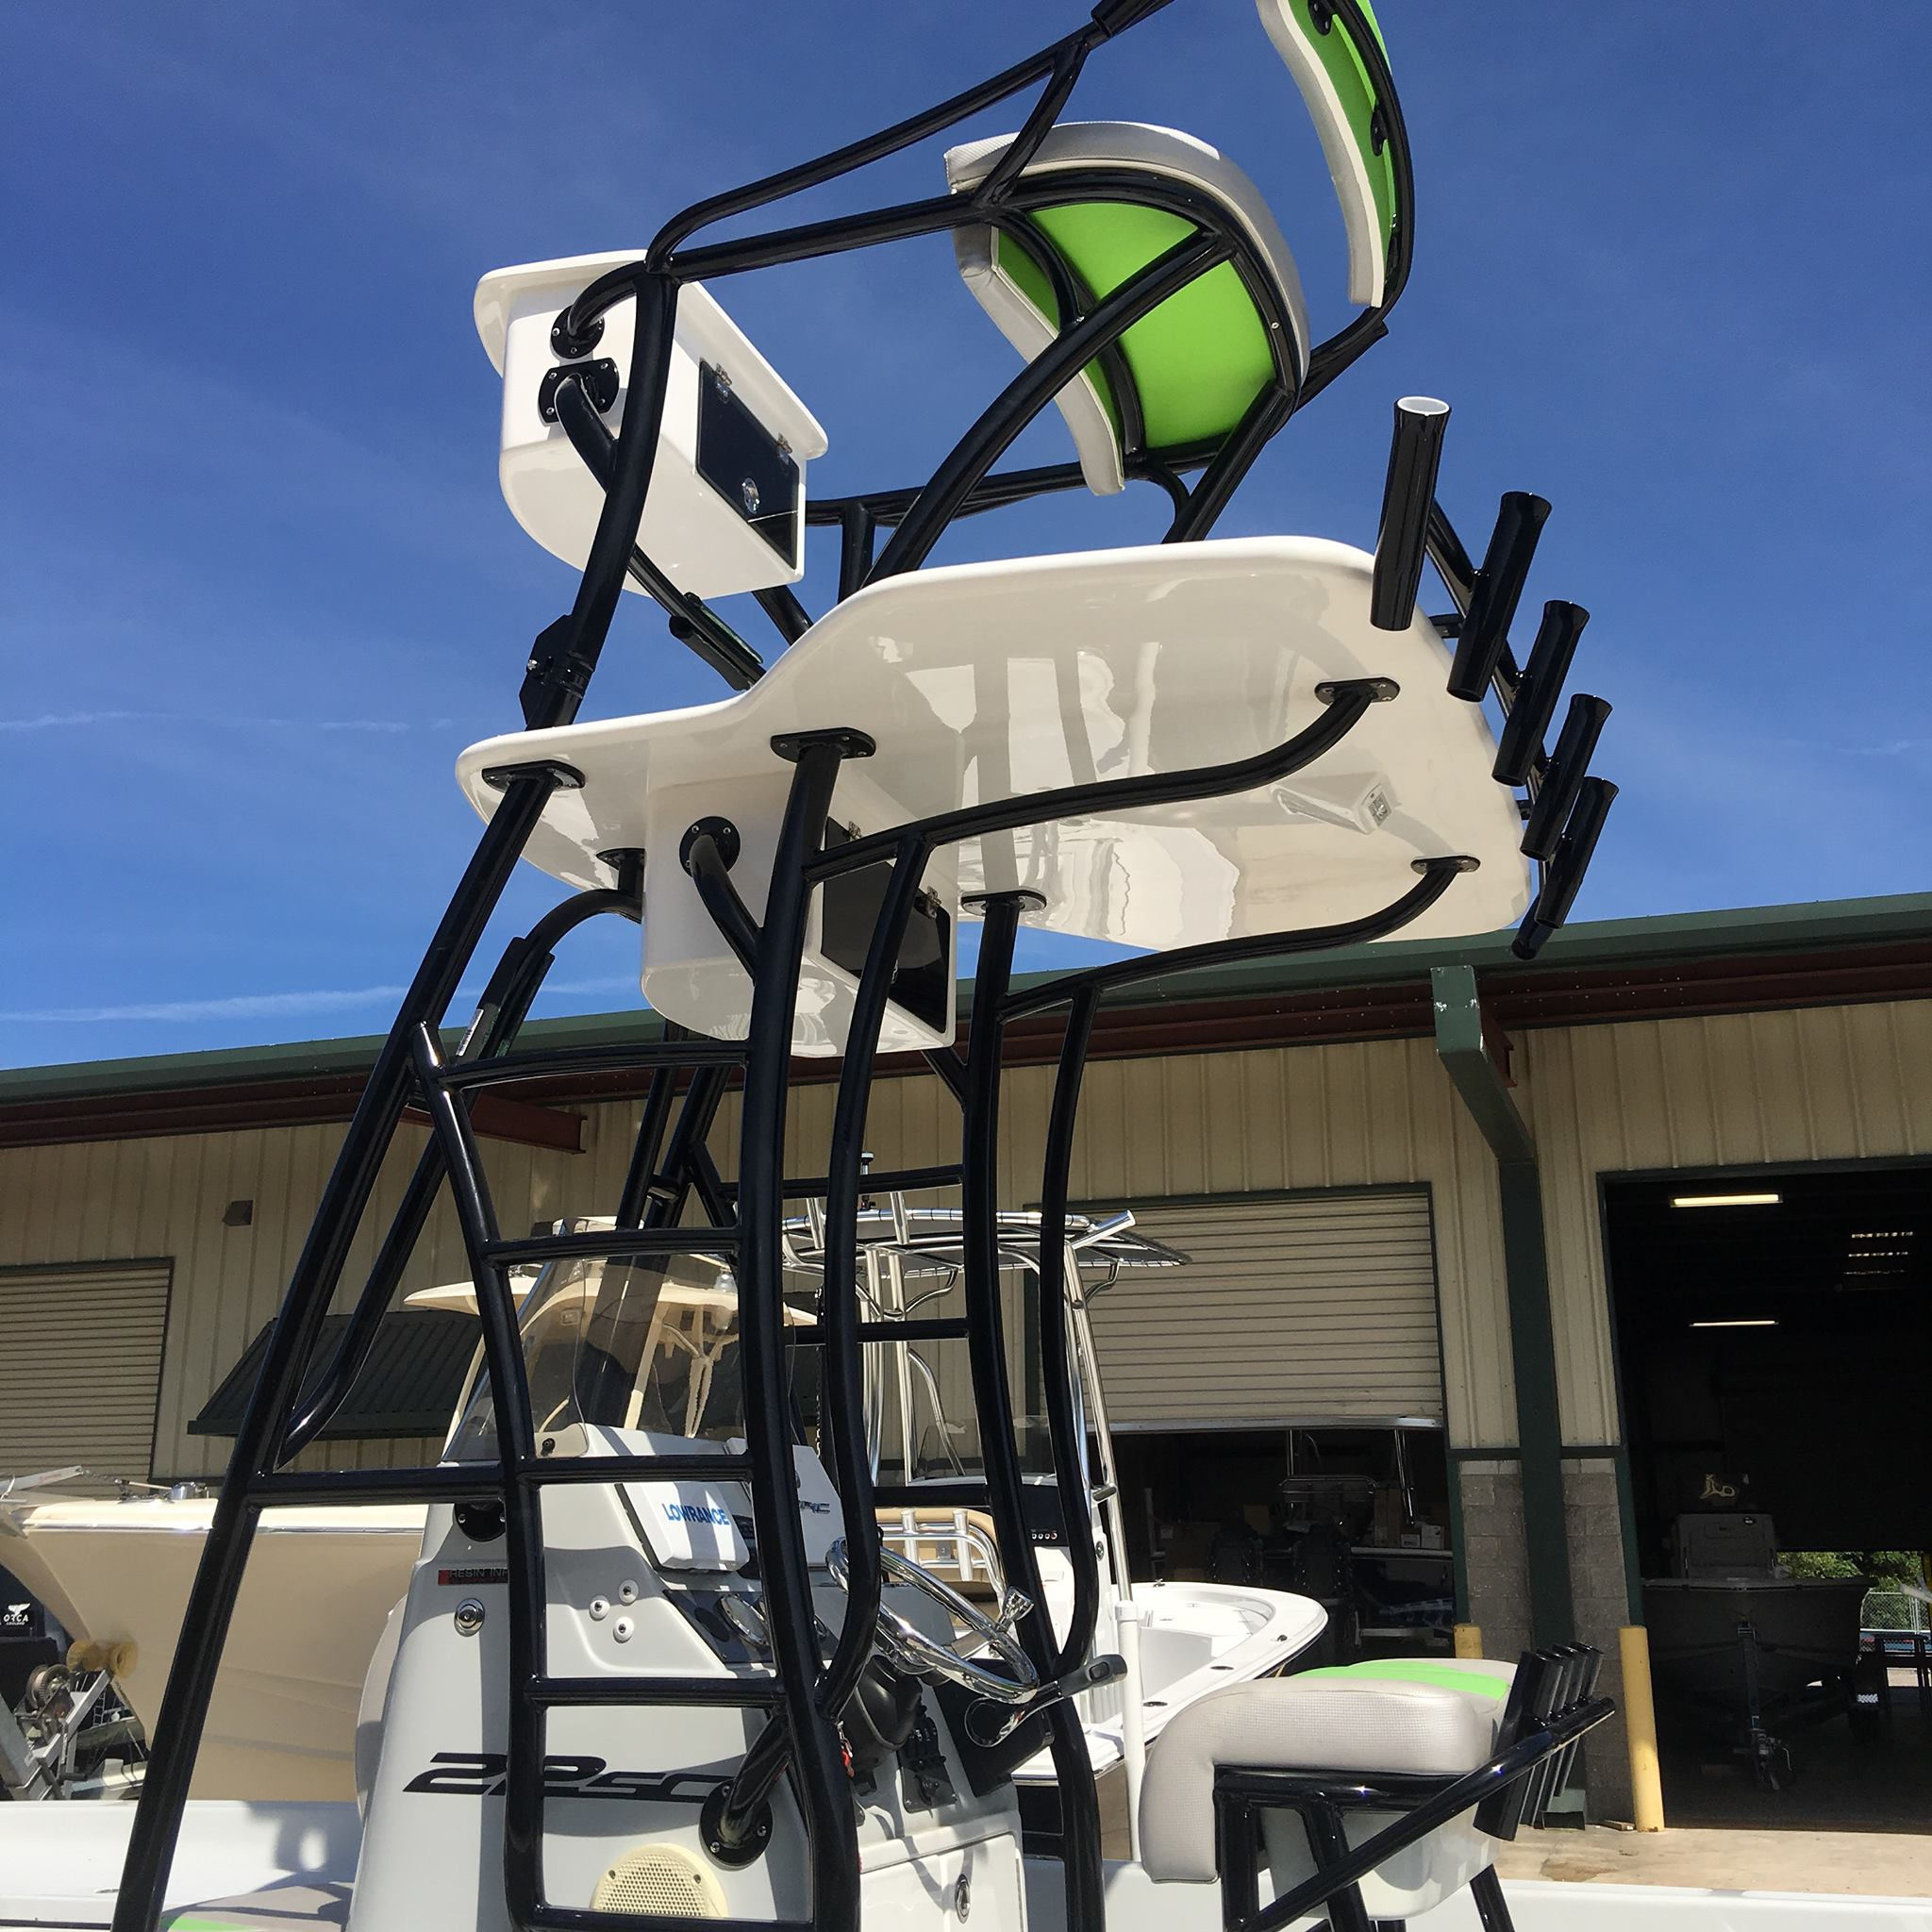 Powder coated boat tower-green and black